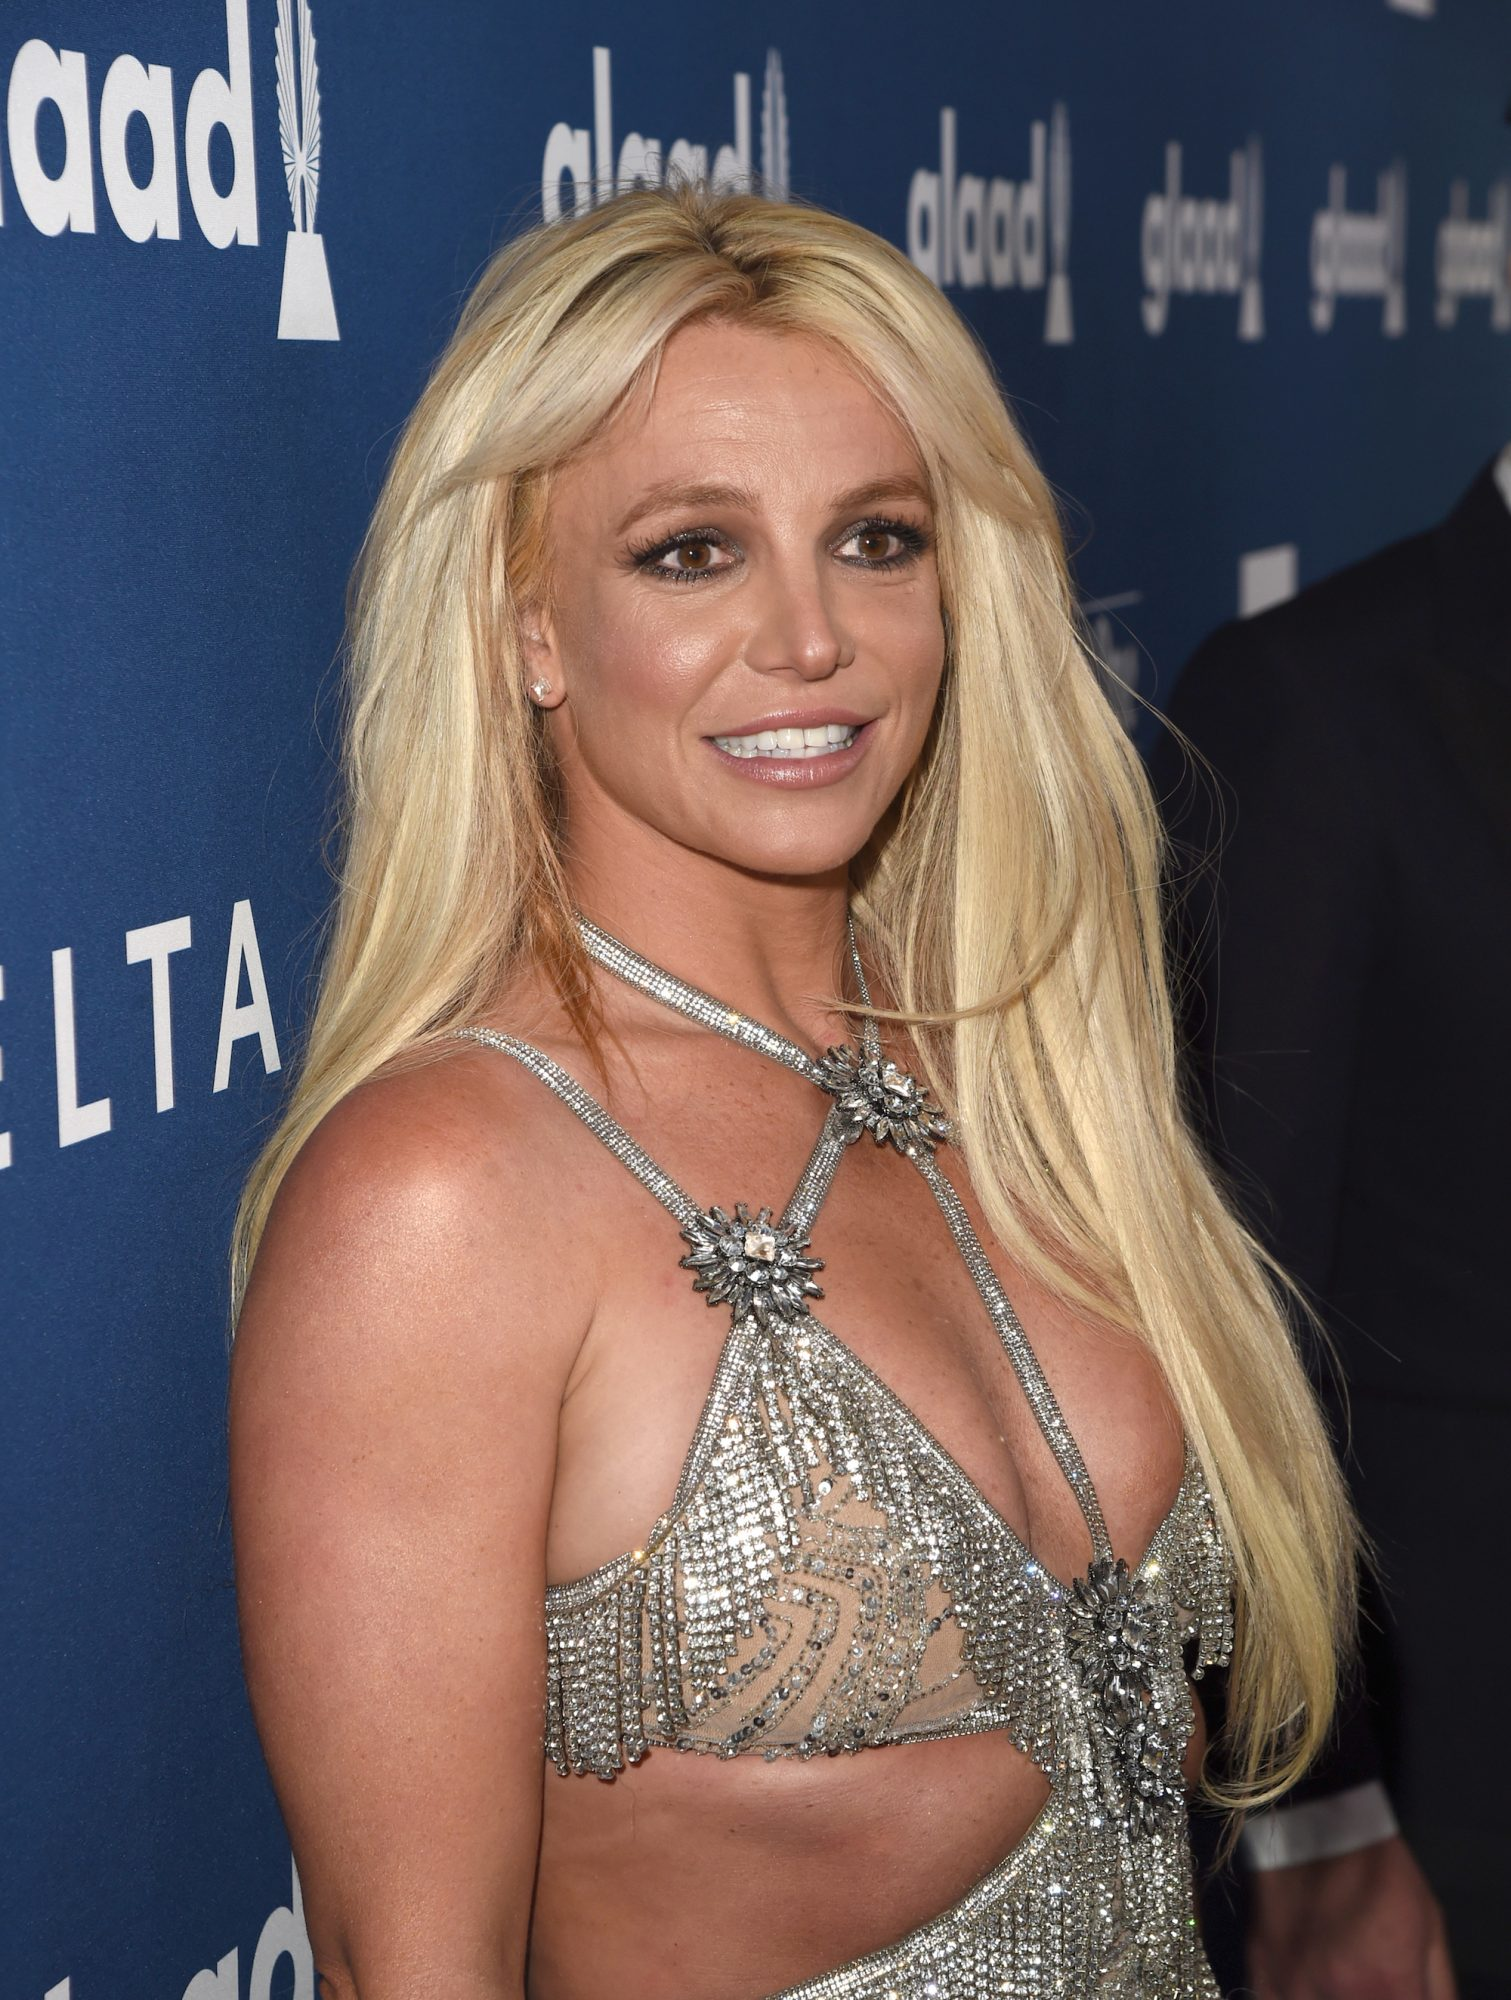 Britney Spears Reportedly Checks into a Mental Health Facility